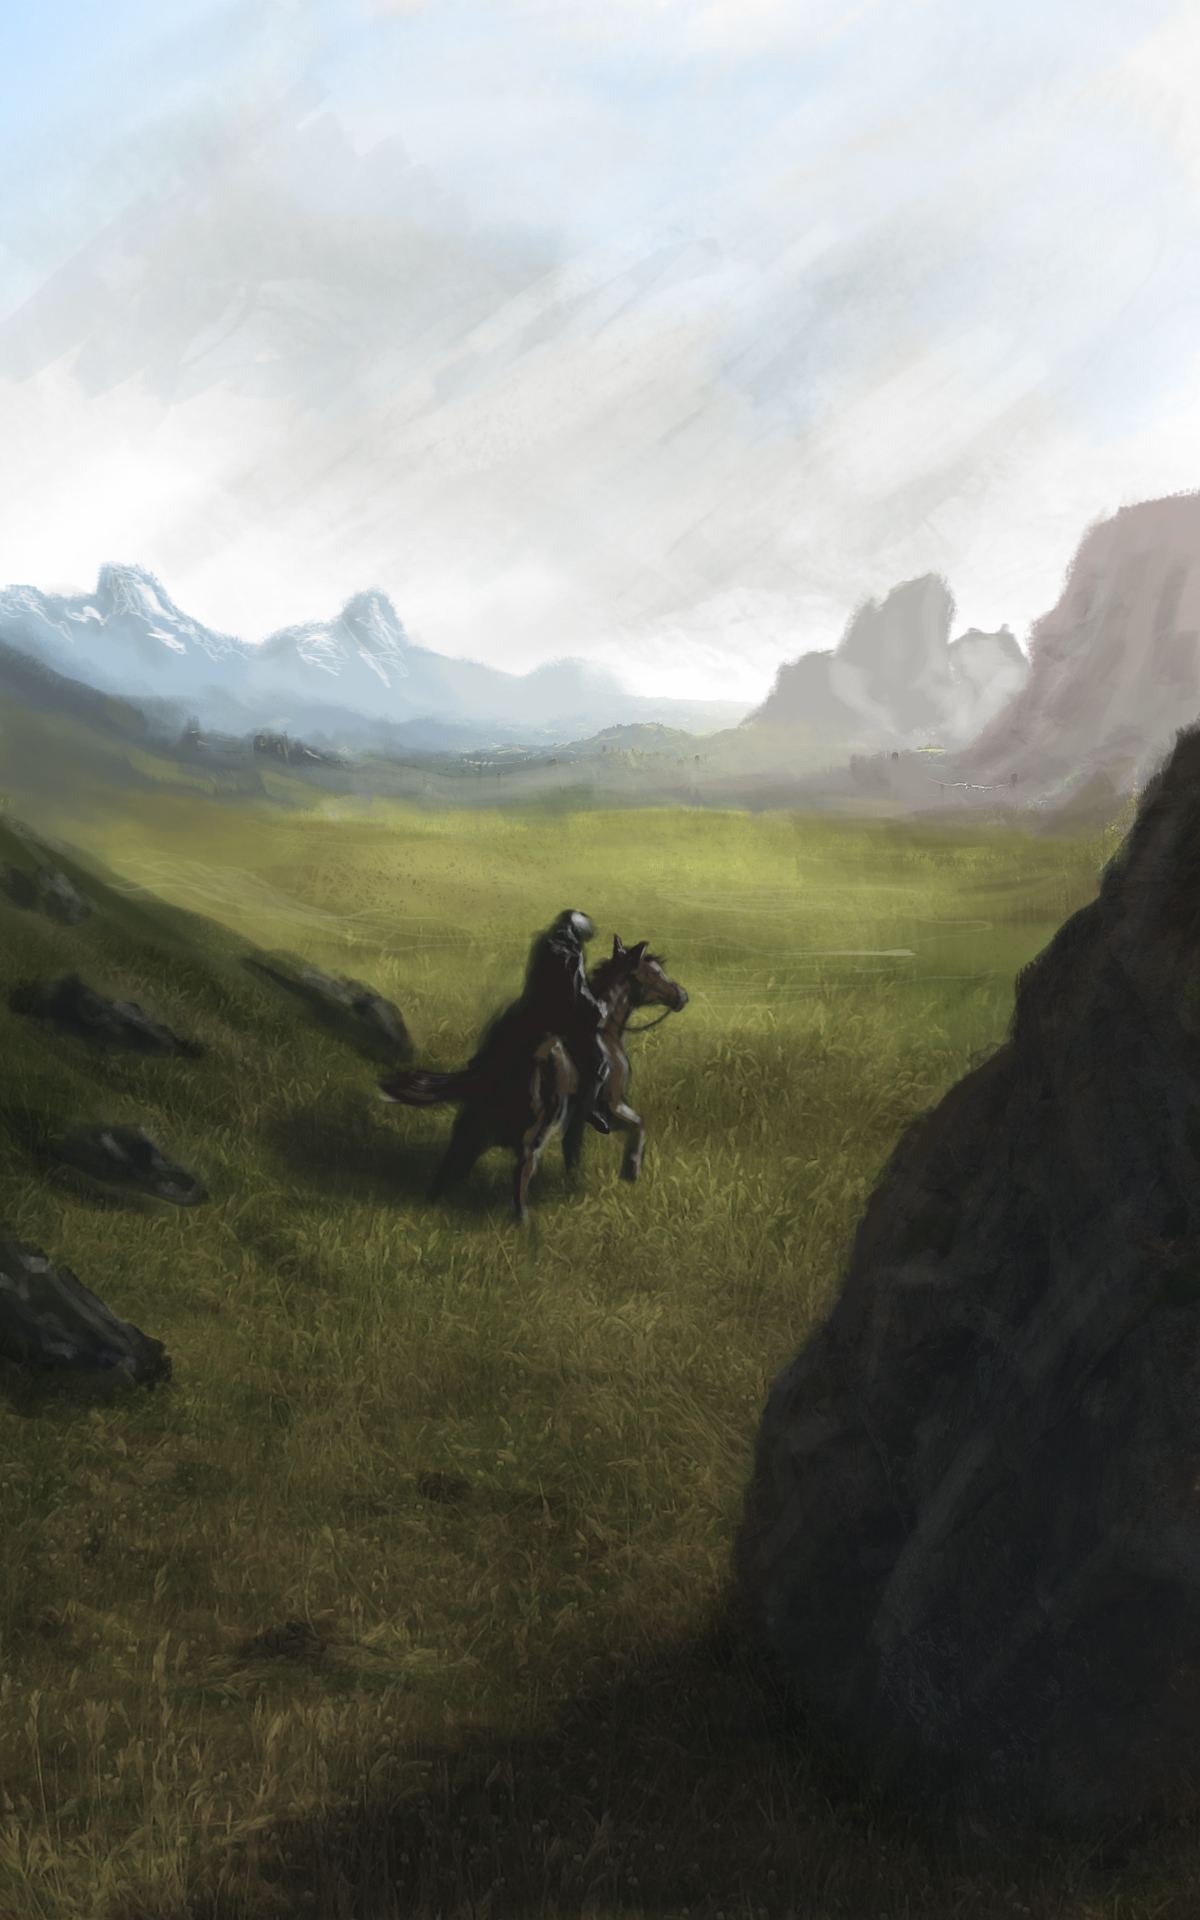 Landscape and horse